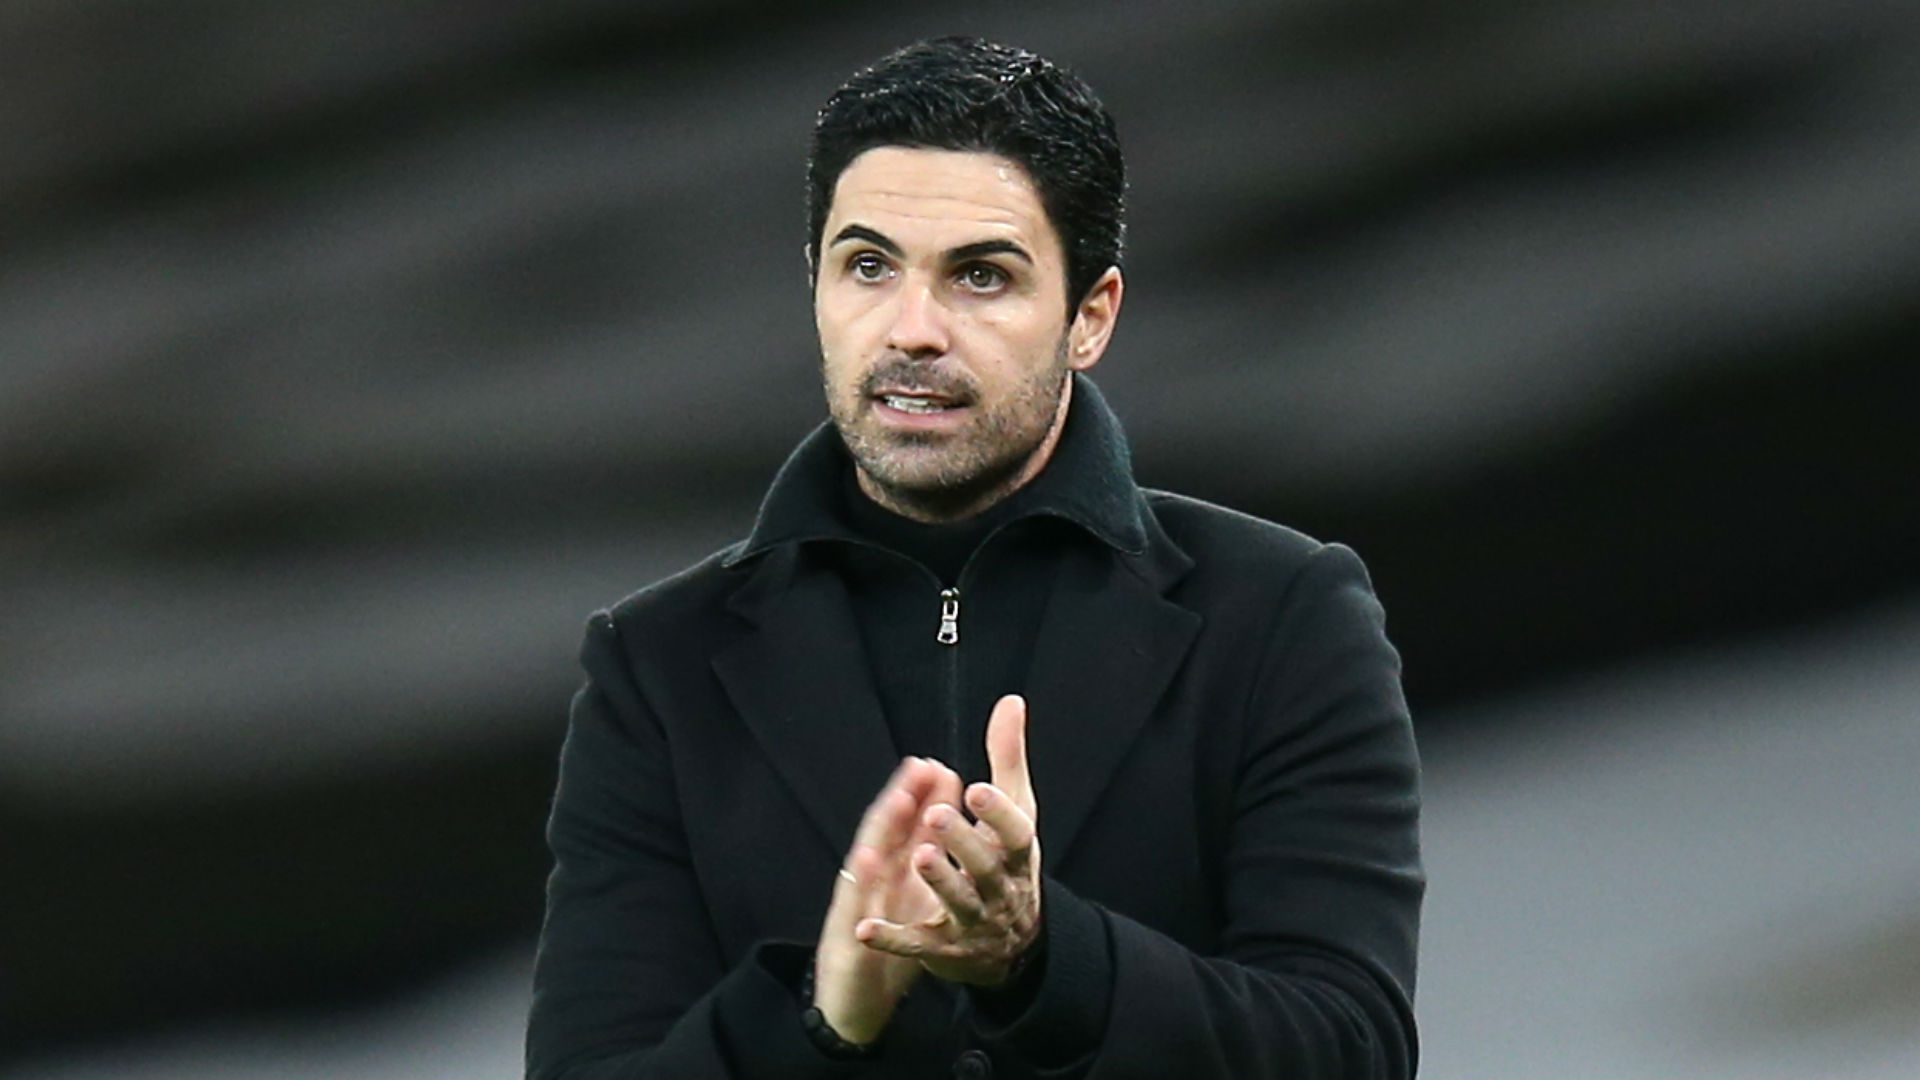 Arteta warns transfer market is 'really complicated' due to pandemic